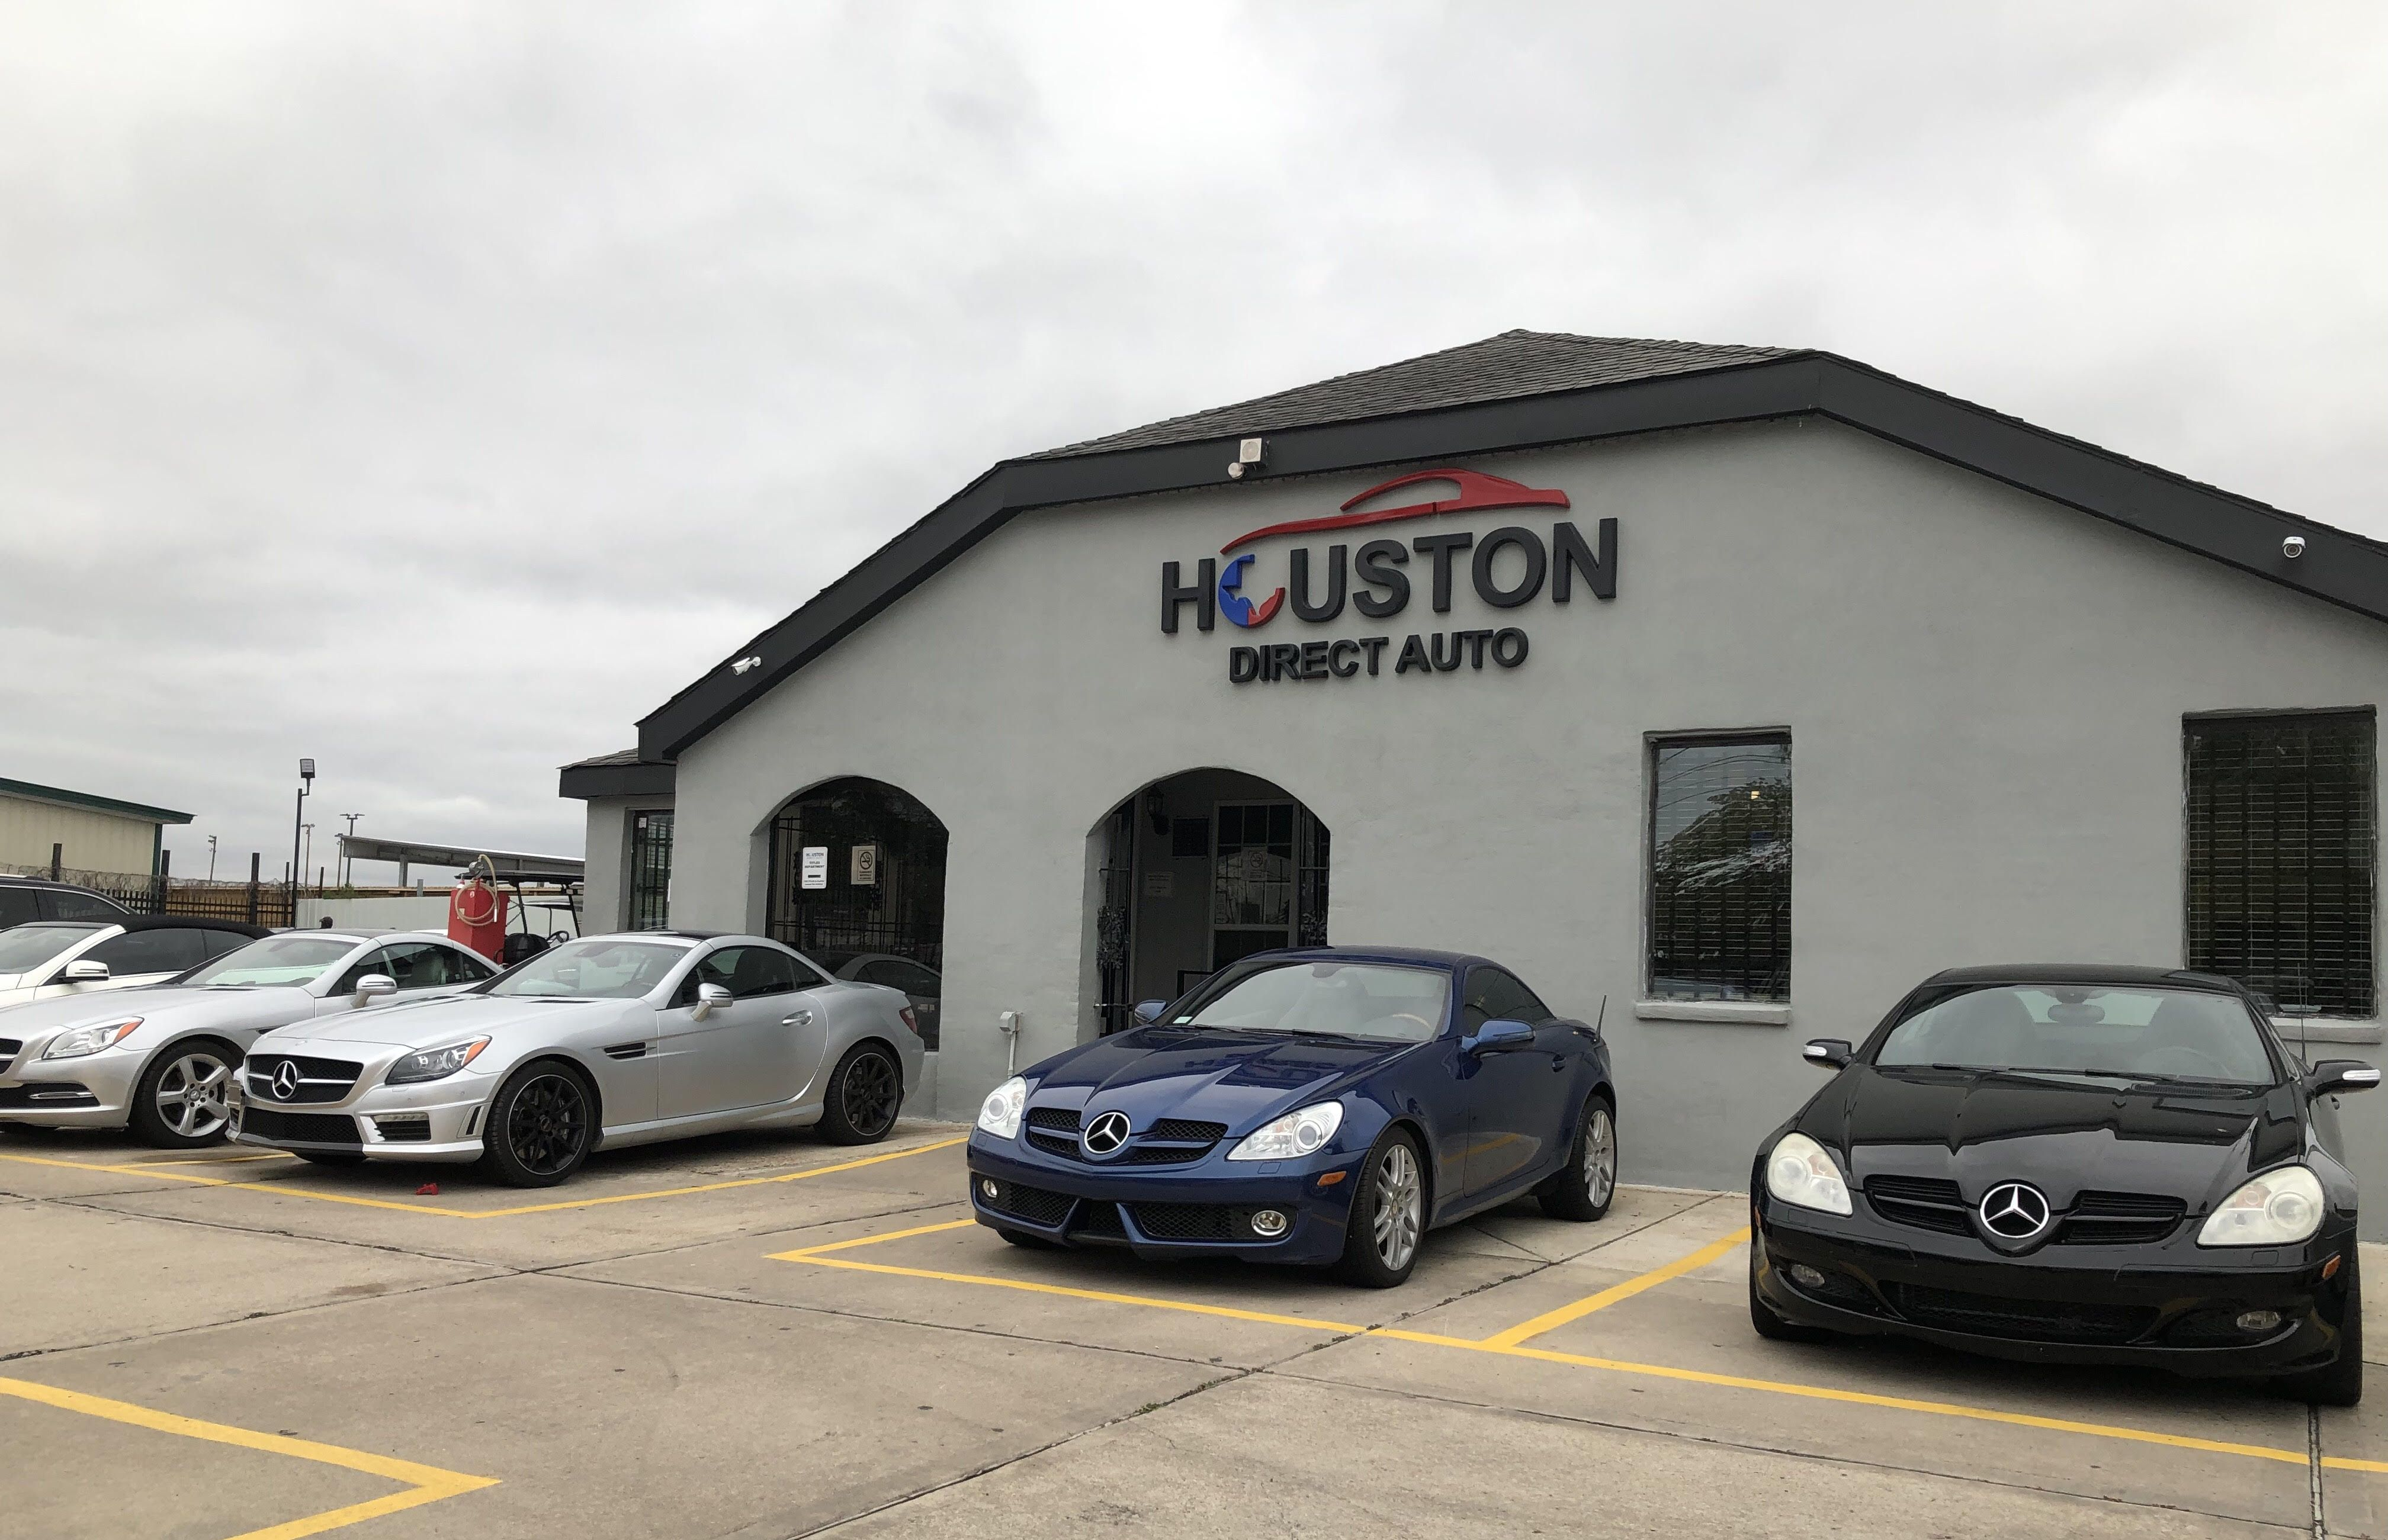 Buying Selling Trading We Got You Covered Come See Us At Houston Direct Auto Or Call Us At 281 661 8427 Houstondirecta Used Cars Car Dealership Benz Car